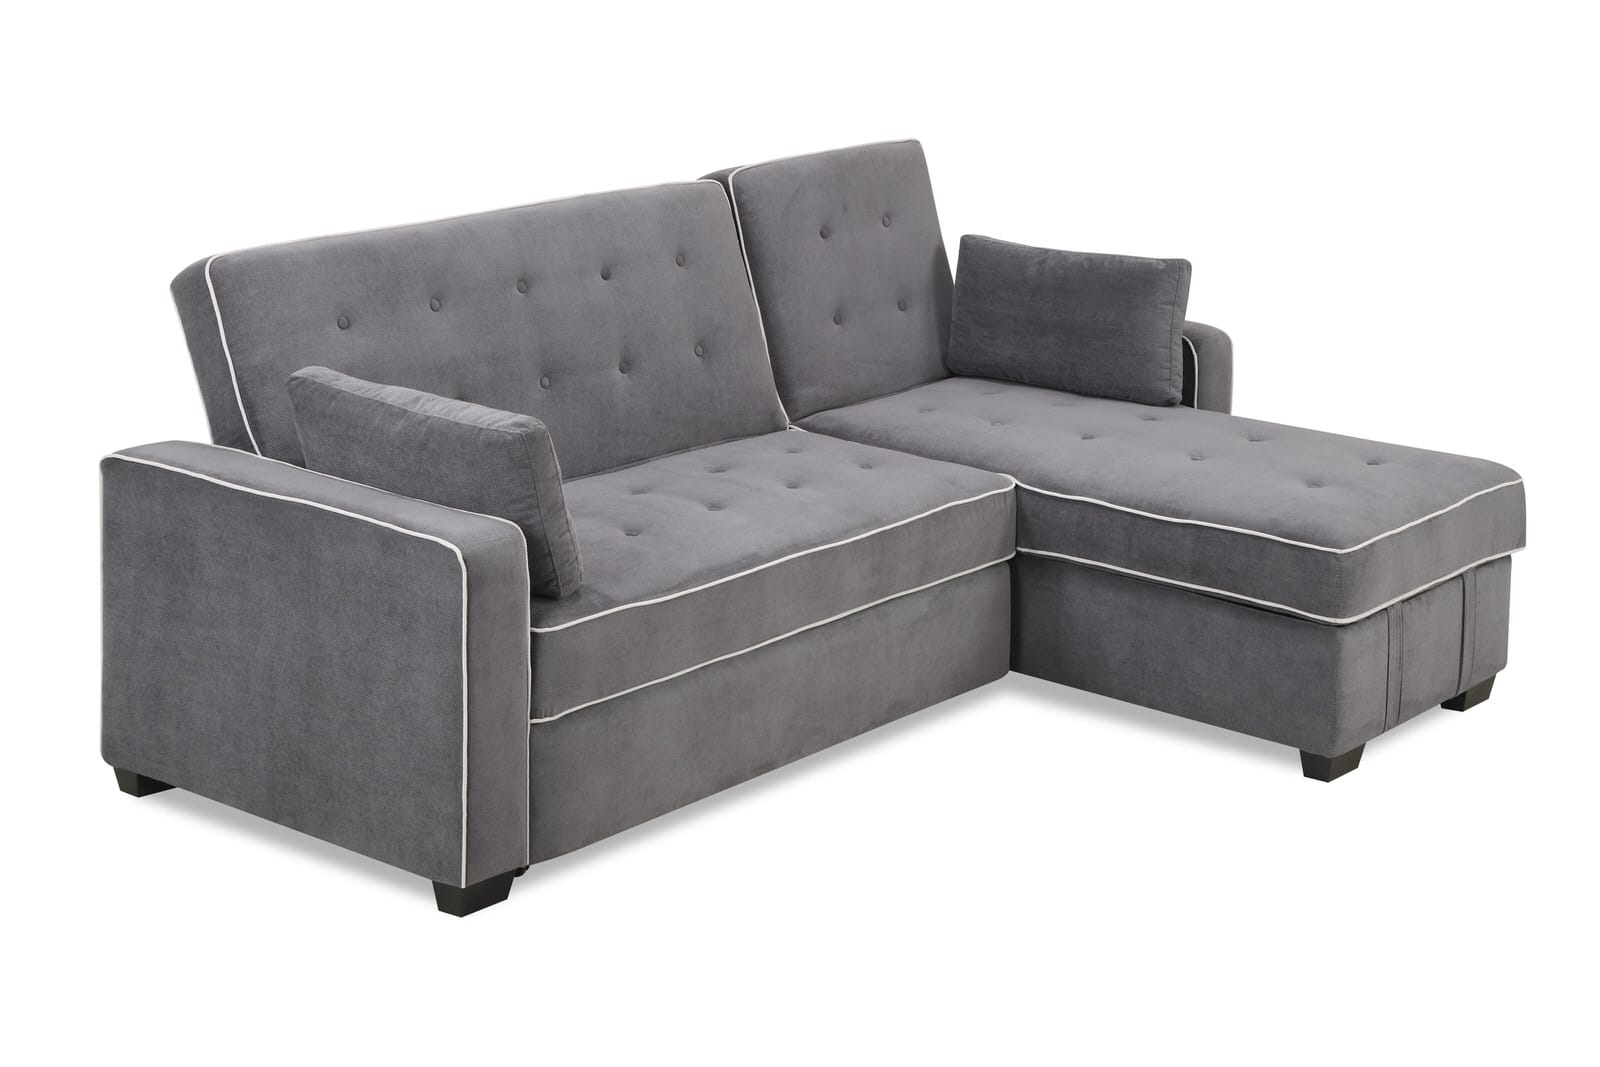 augustine king size sofa bed moon grey by serta lifestyle